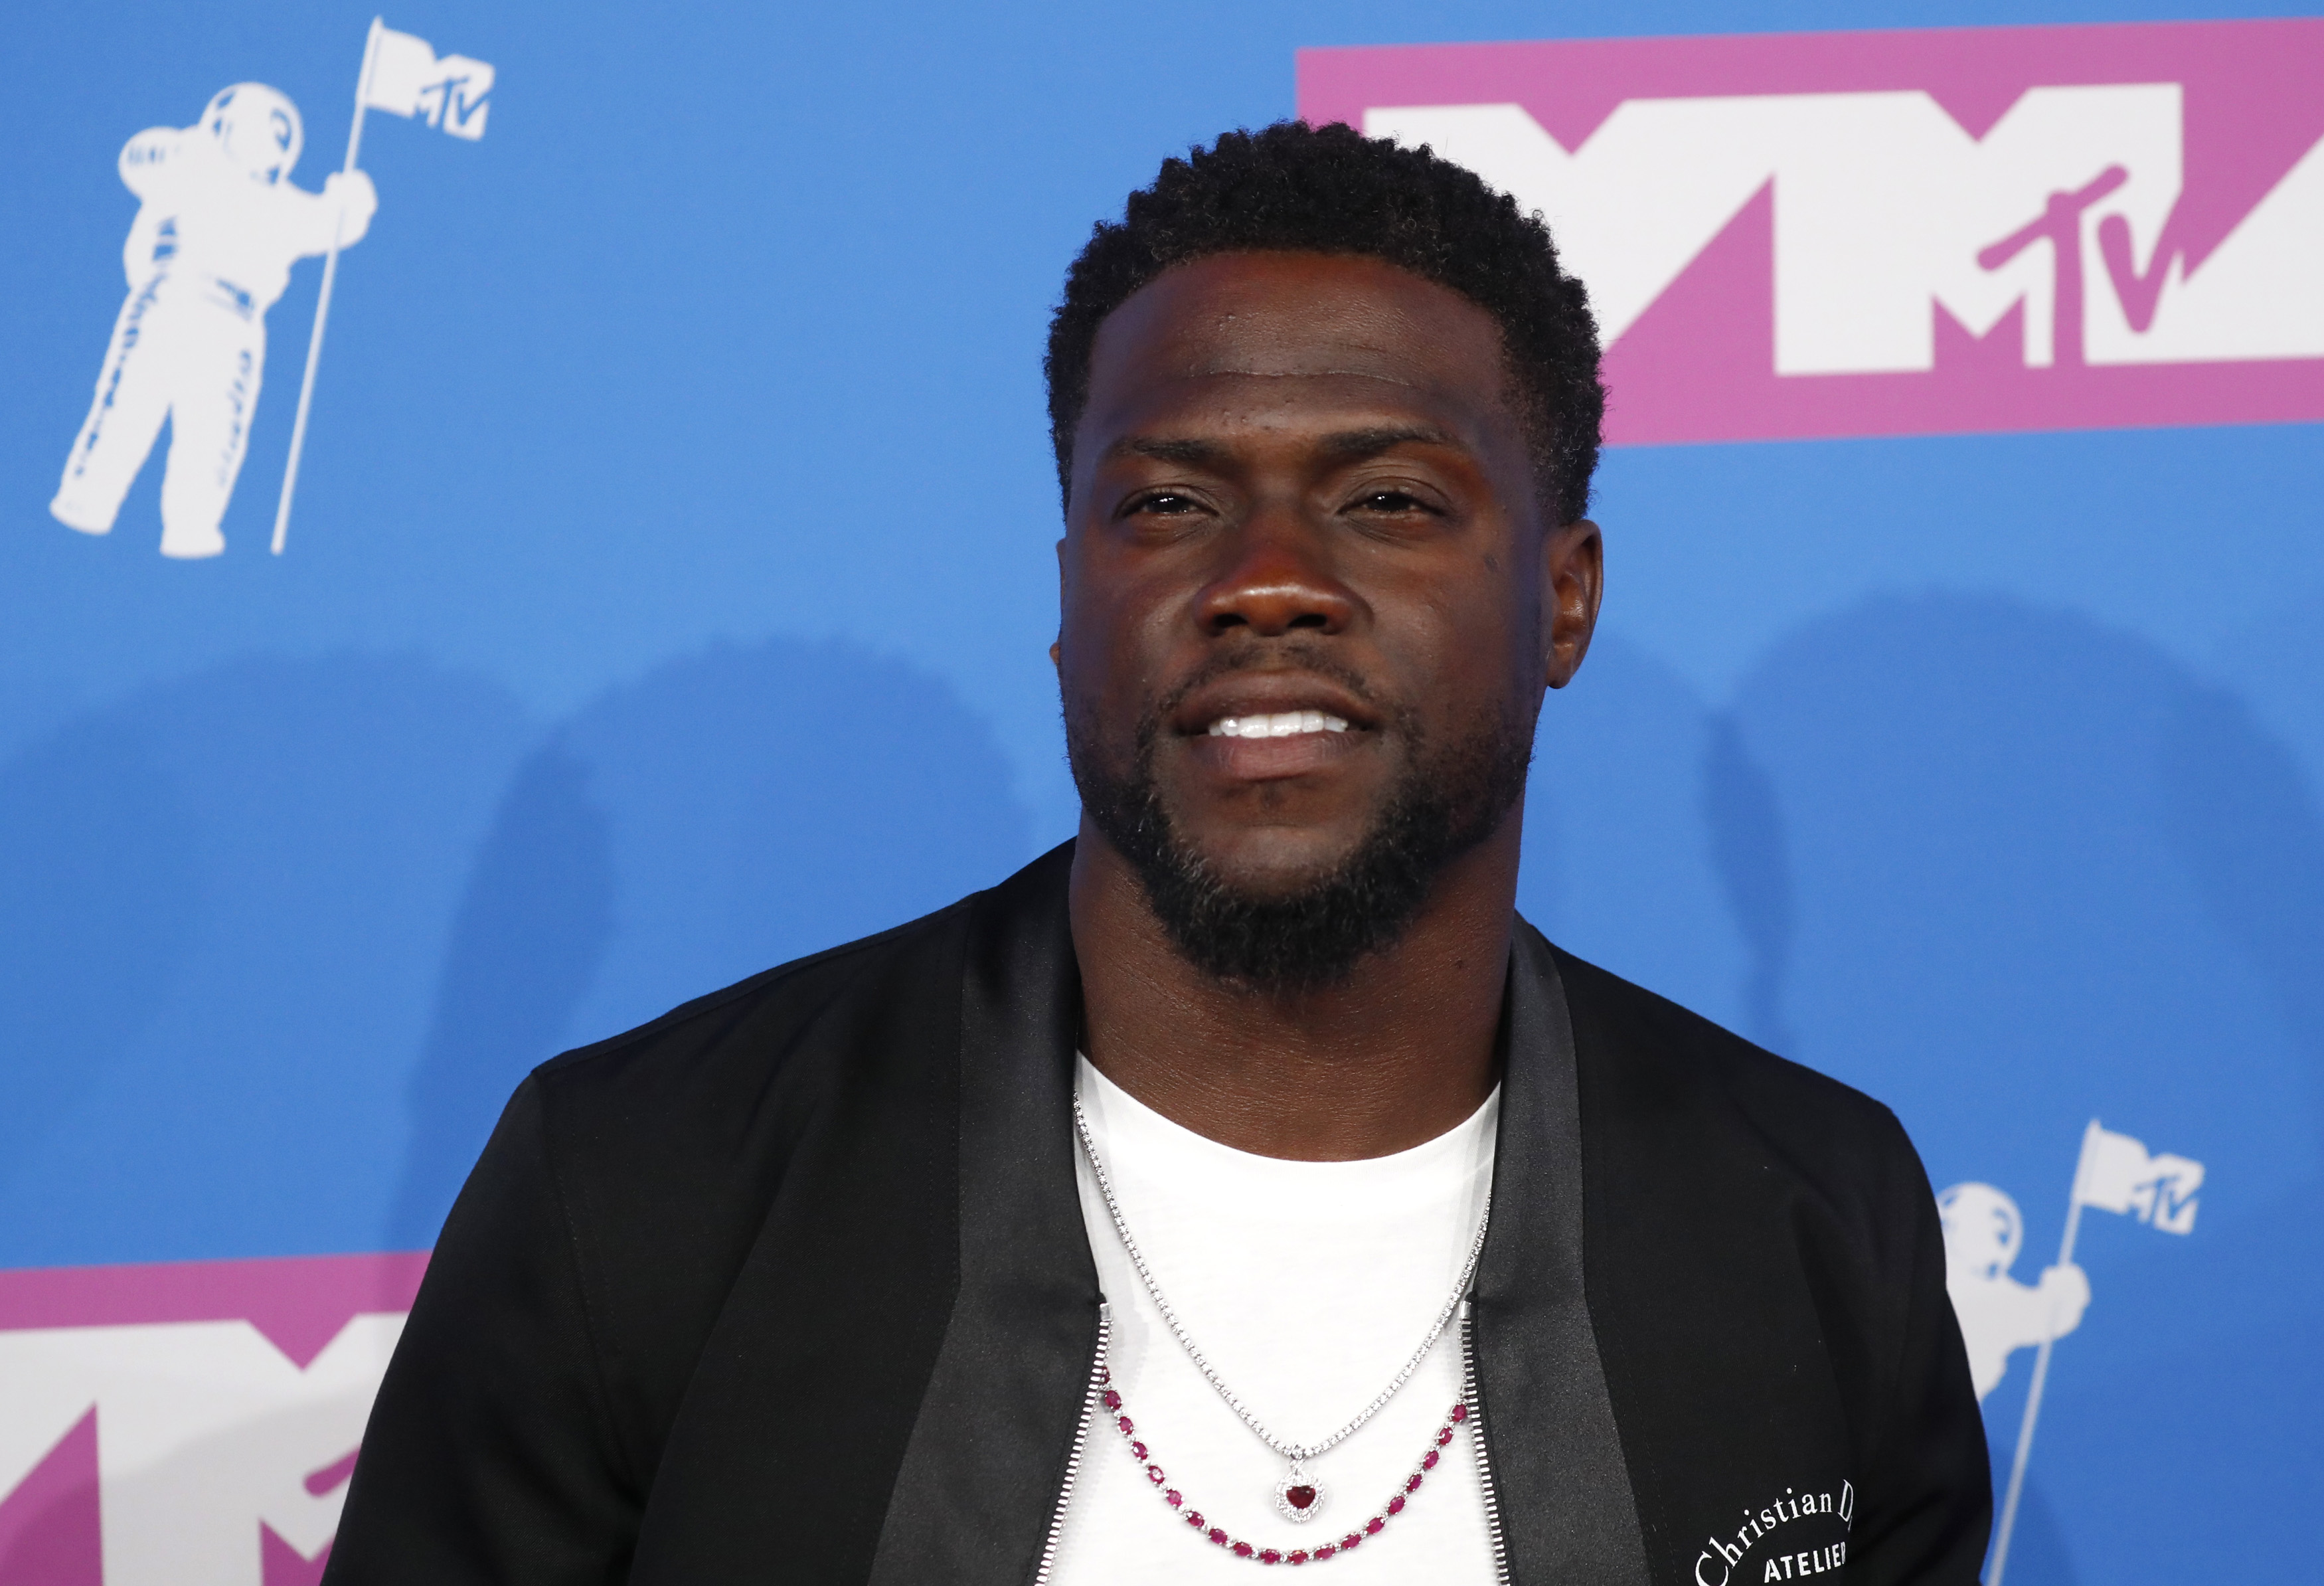 Kevin Hart arrives at the 2018 MTV Video Music Awards at Radio City Music Hall in New York City on August 20, 2018. (Photo: REUTERS/Andrew Kelly)